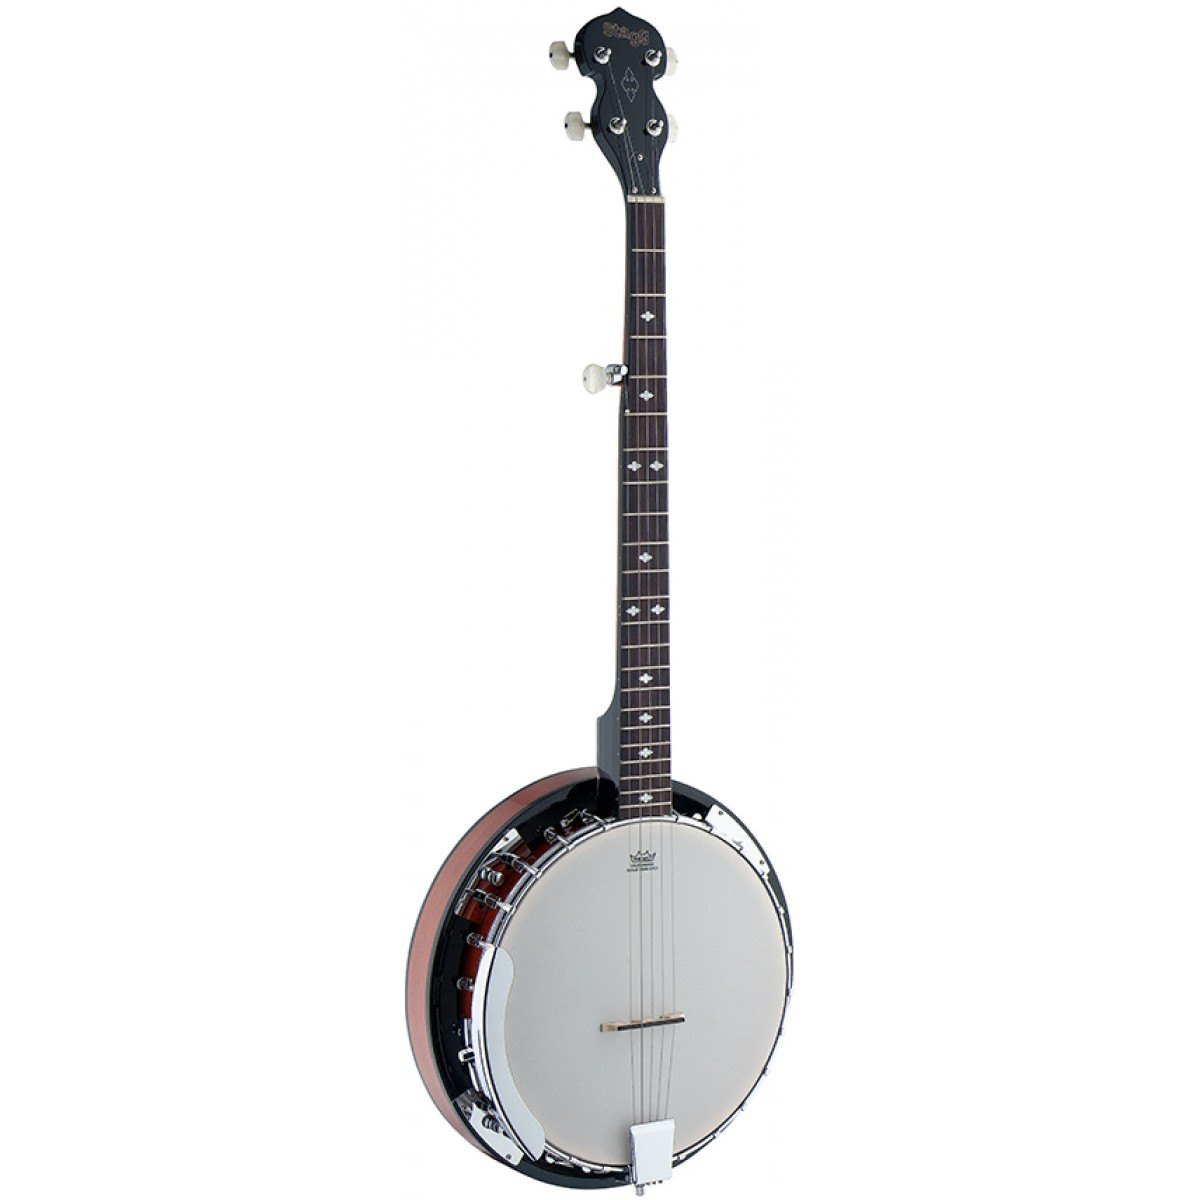 Stagg BJW24 DL, banjo